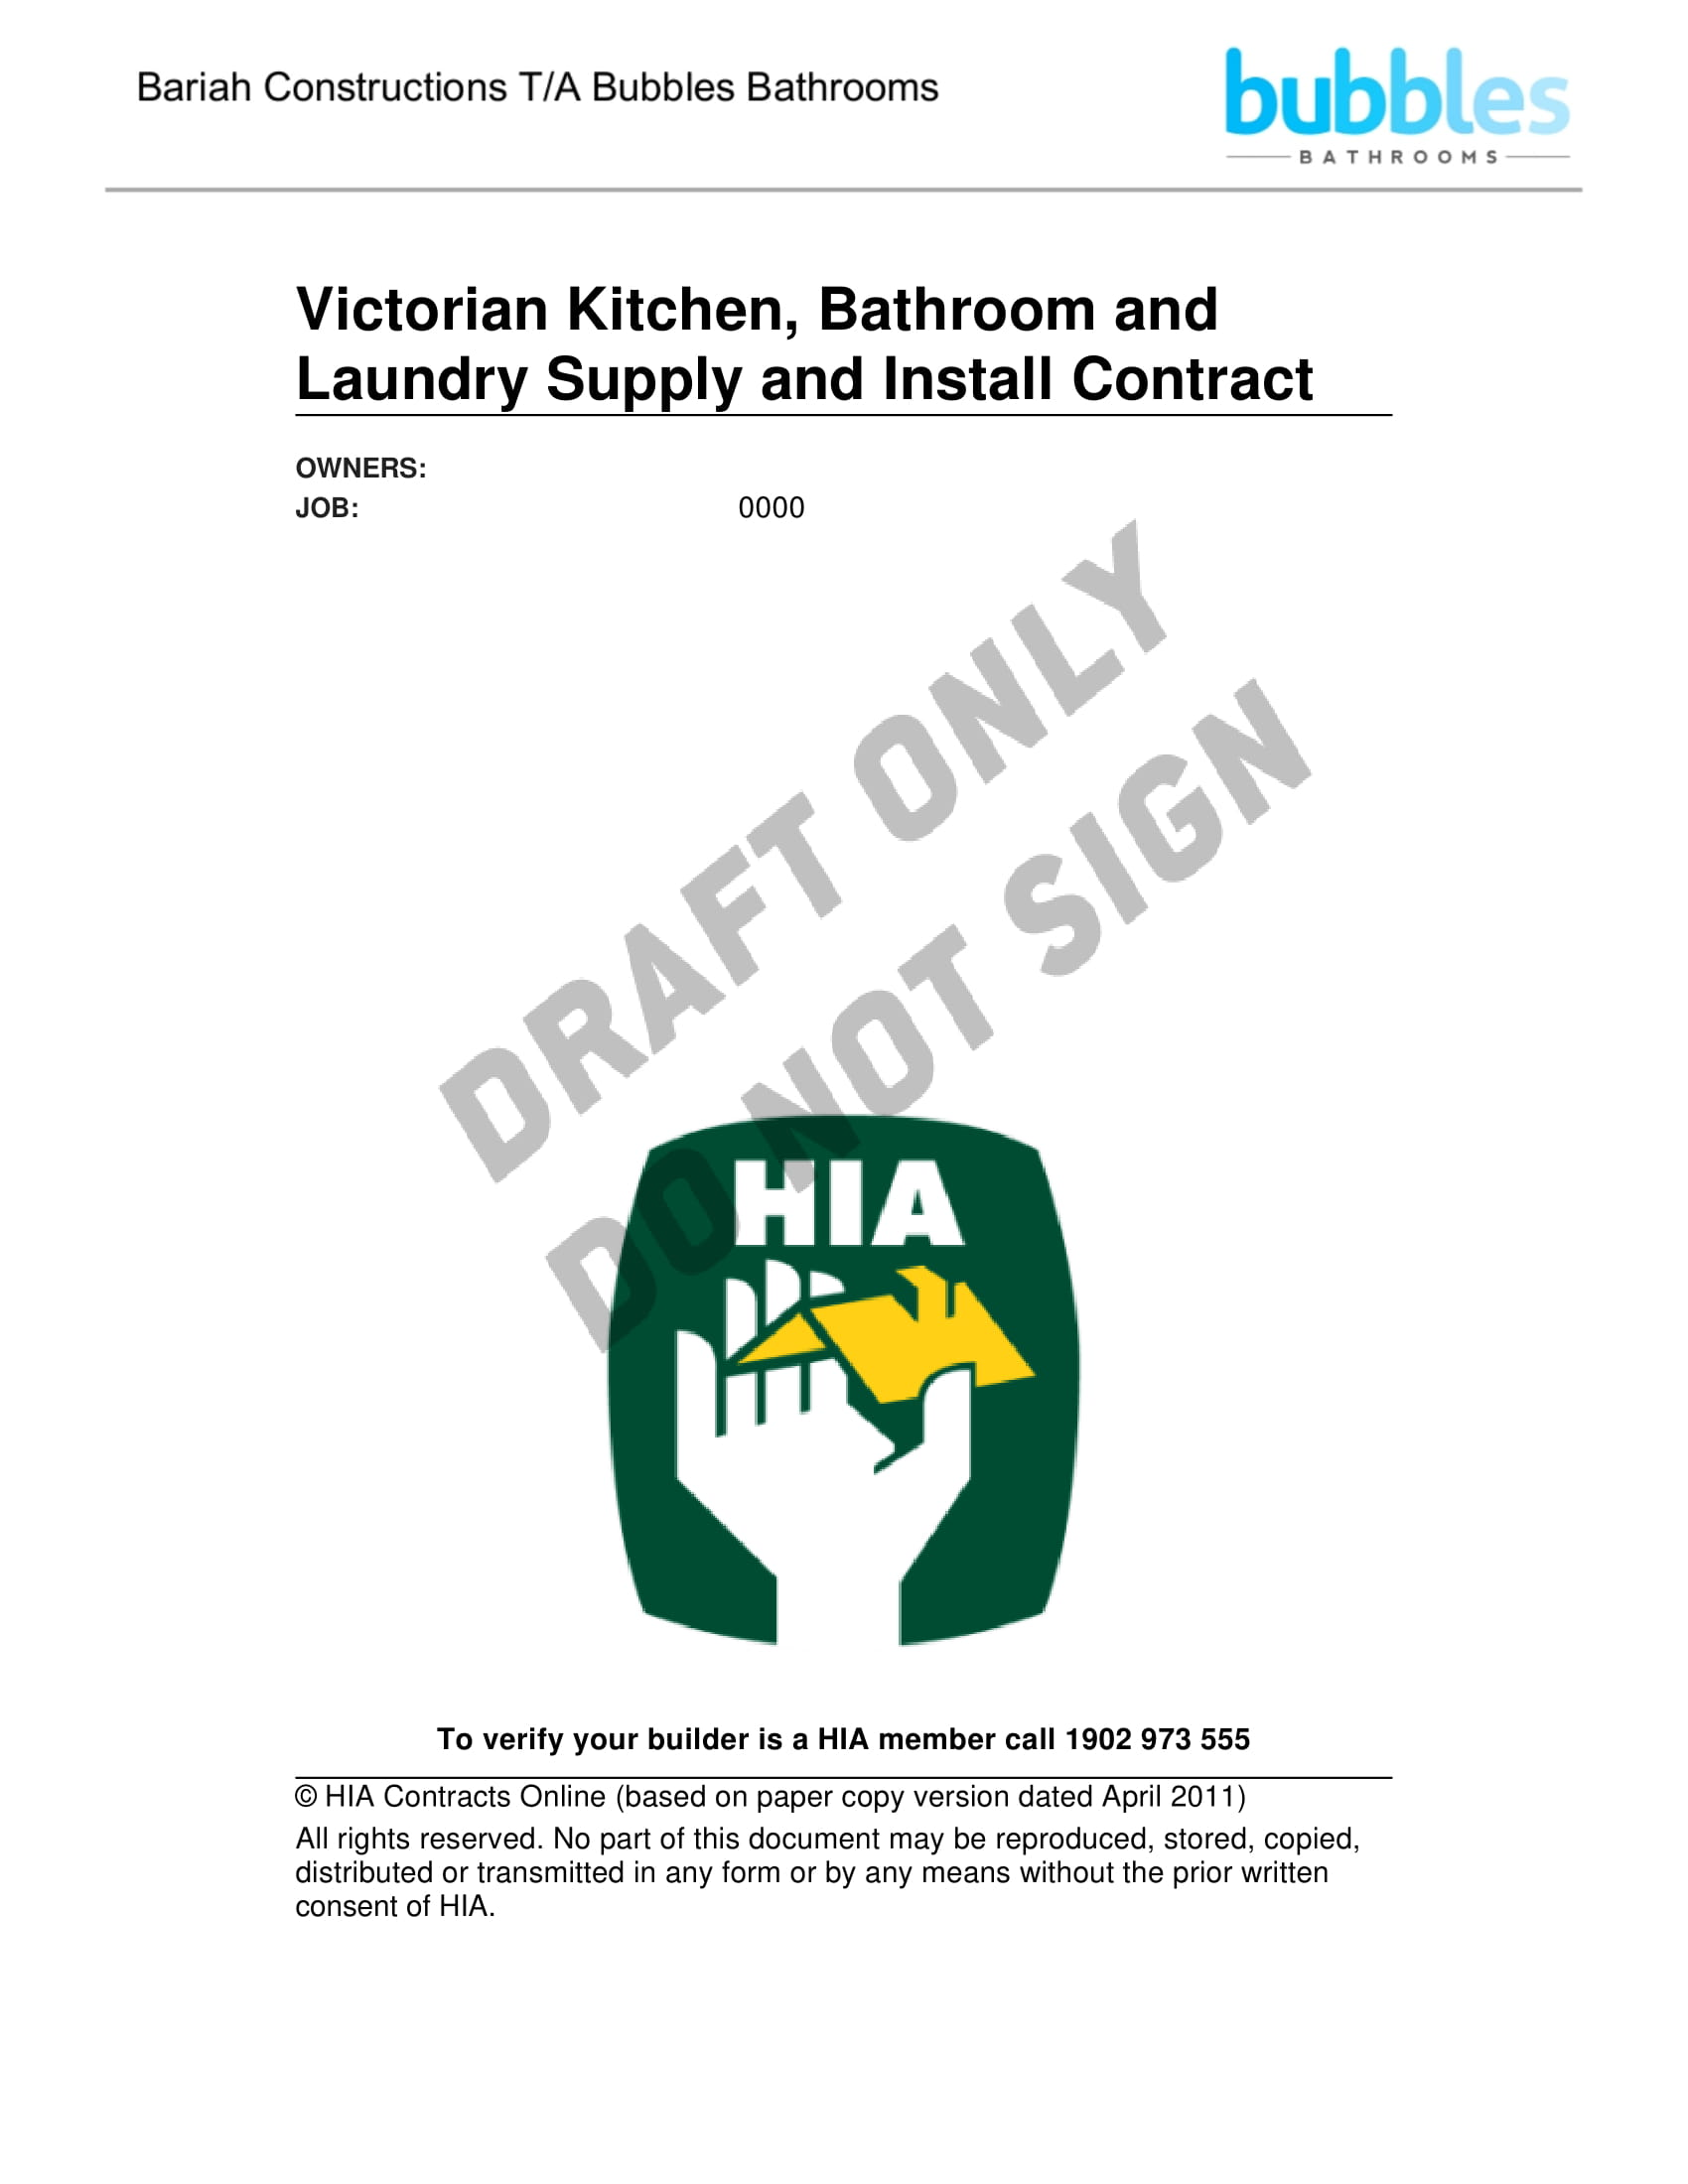 remodeling agreement victorian kitchen bathroom and laundry supply and install contract draft example 01